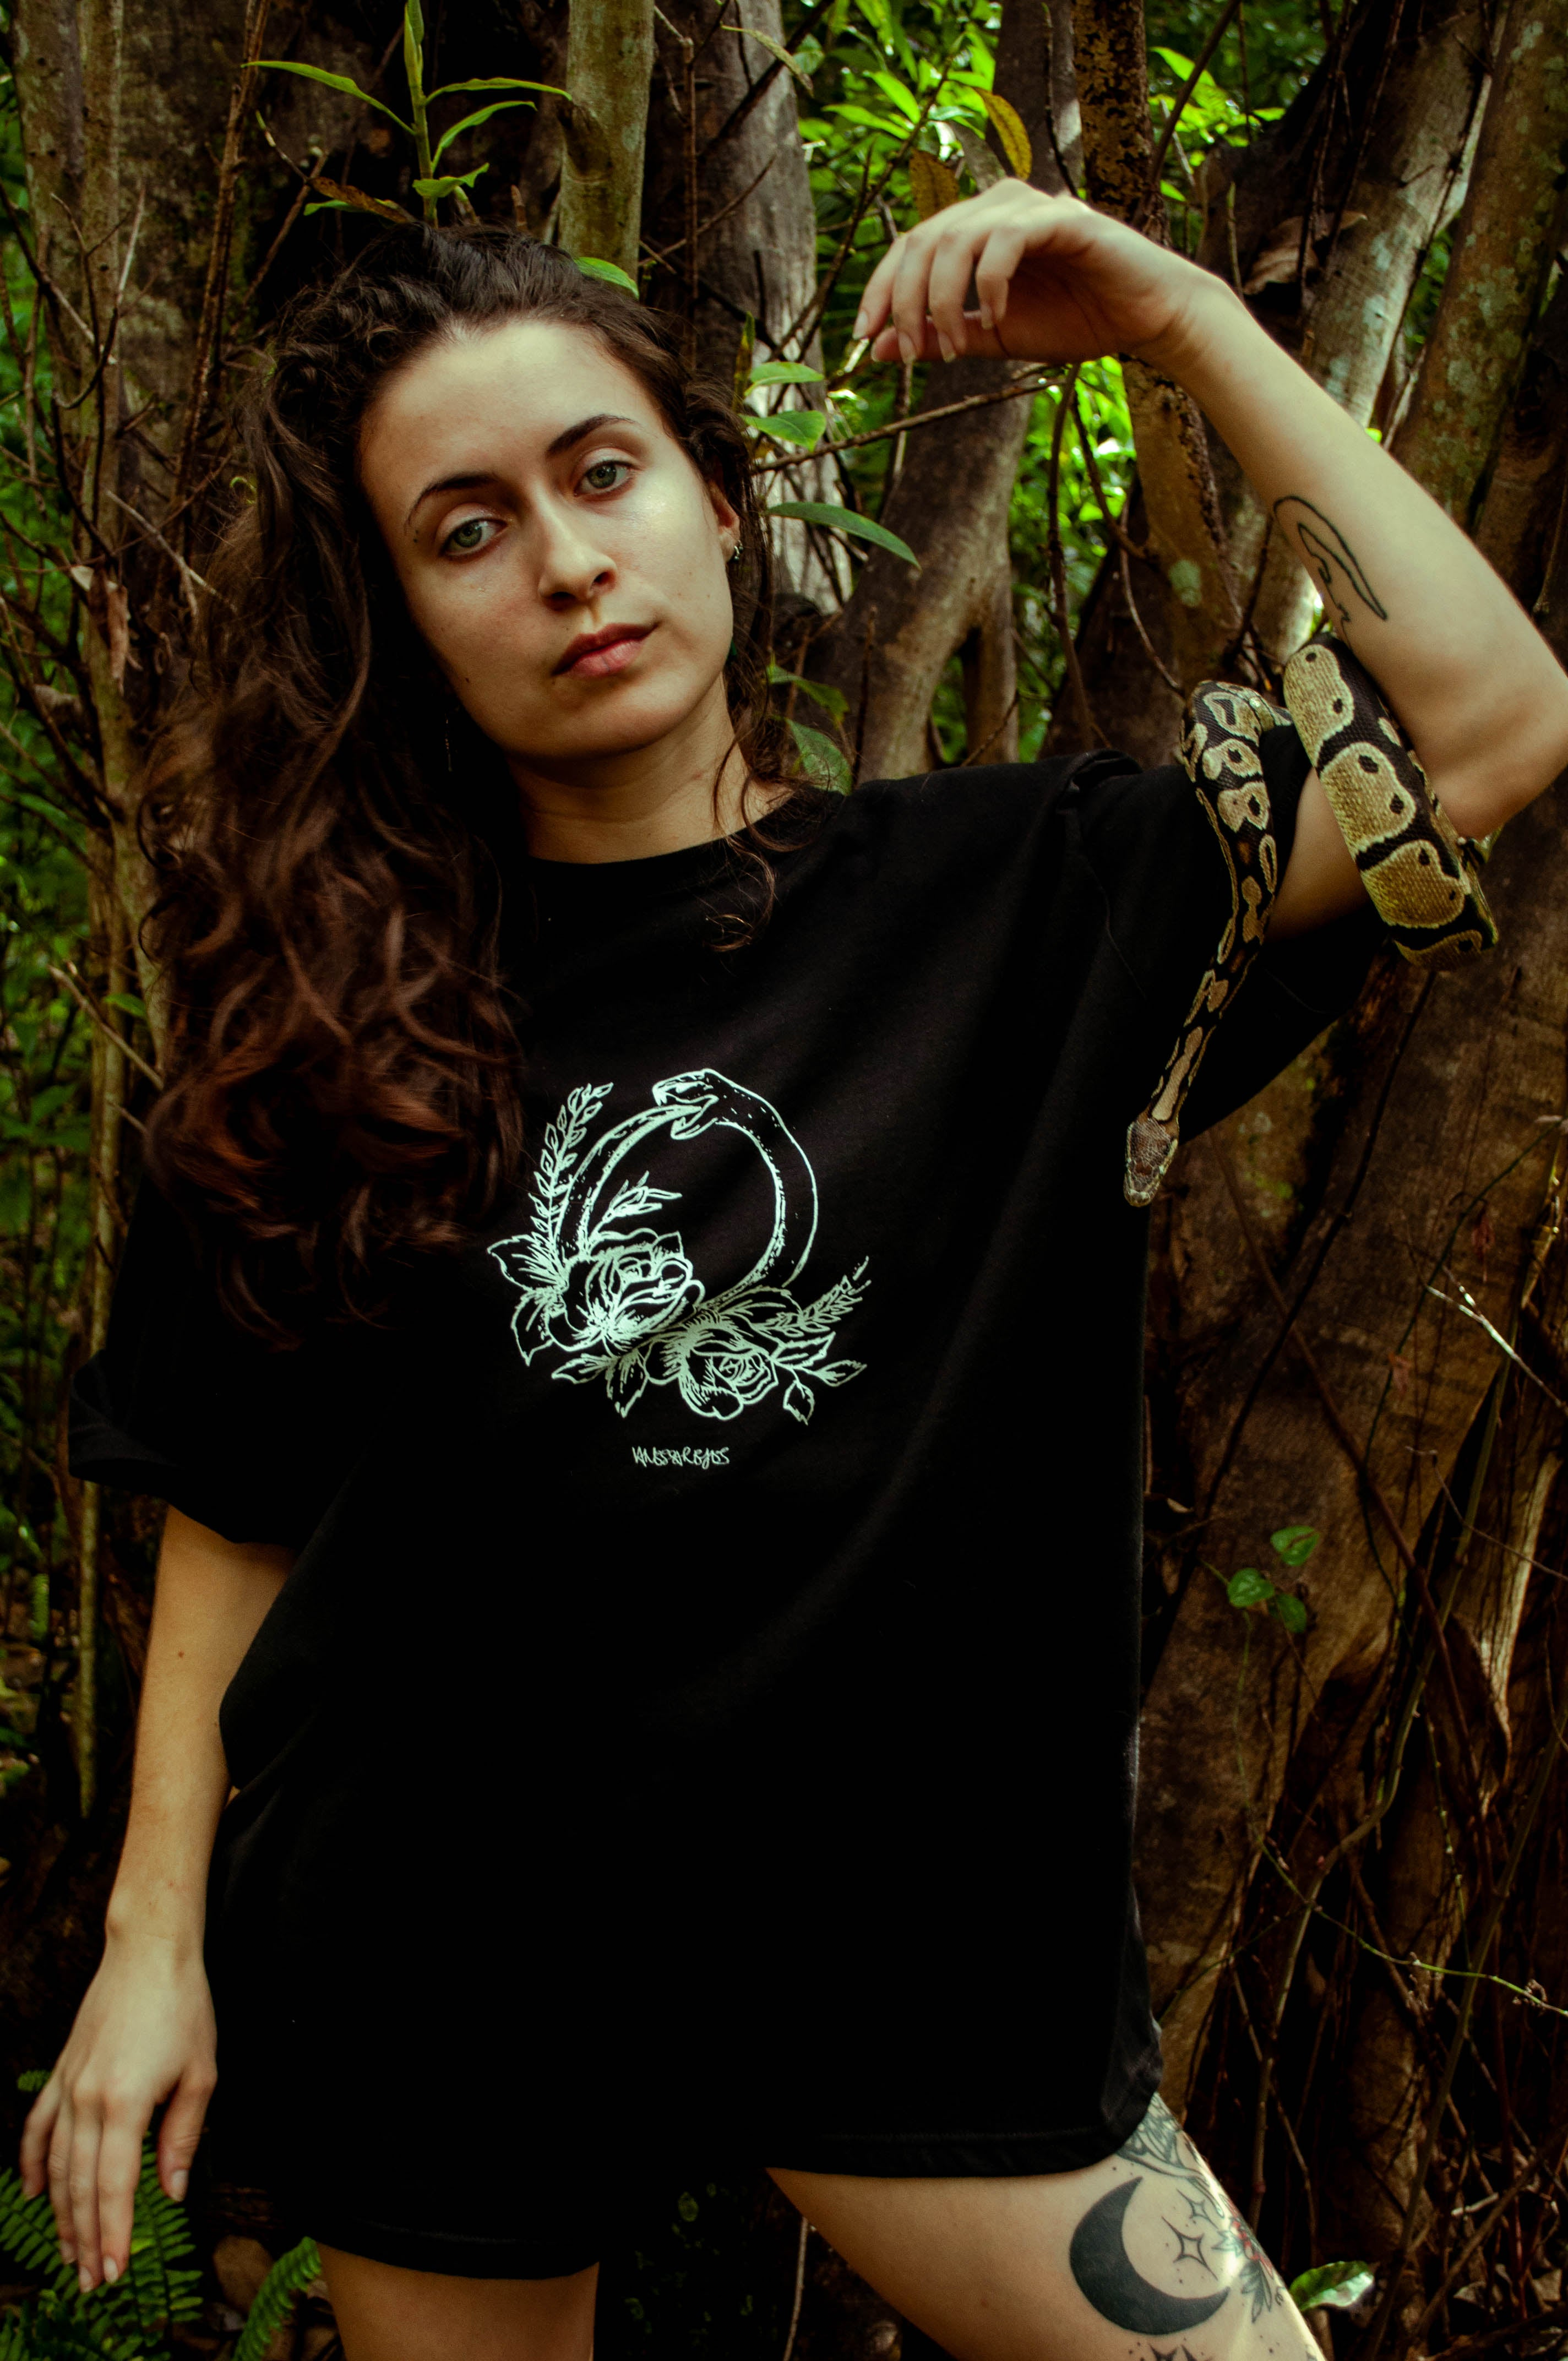 The Cyclic Serpent - Graphic T